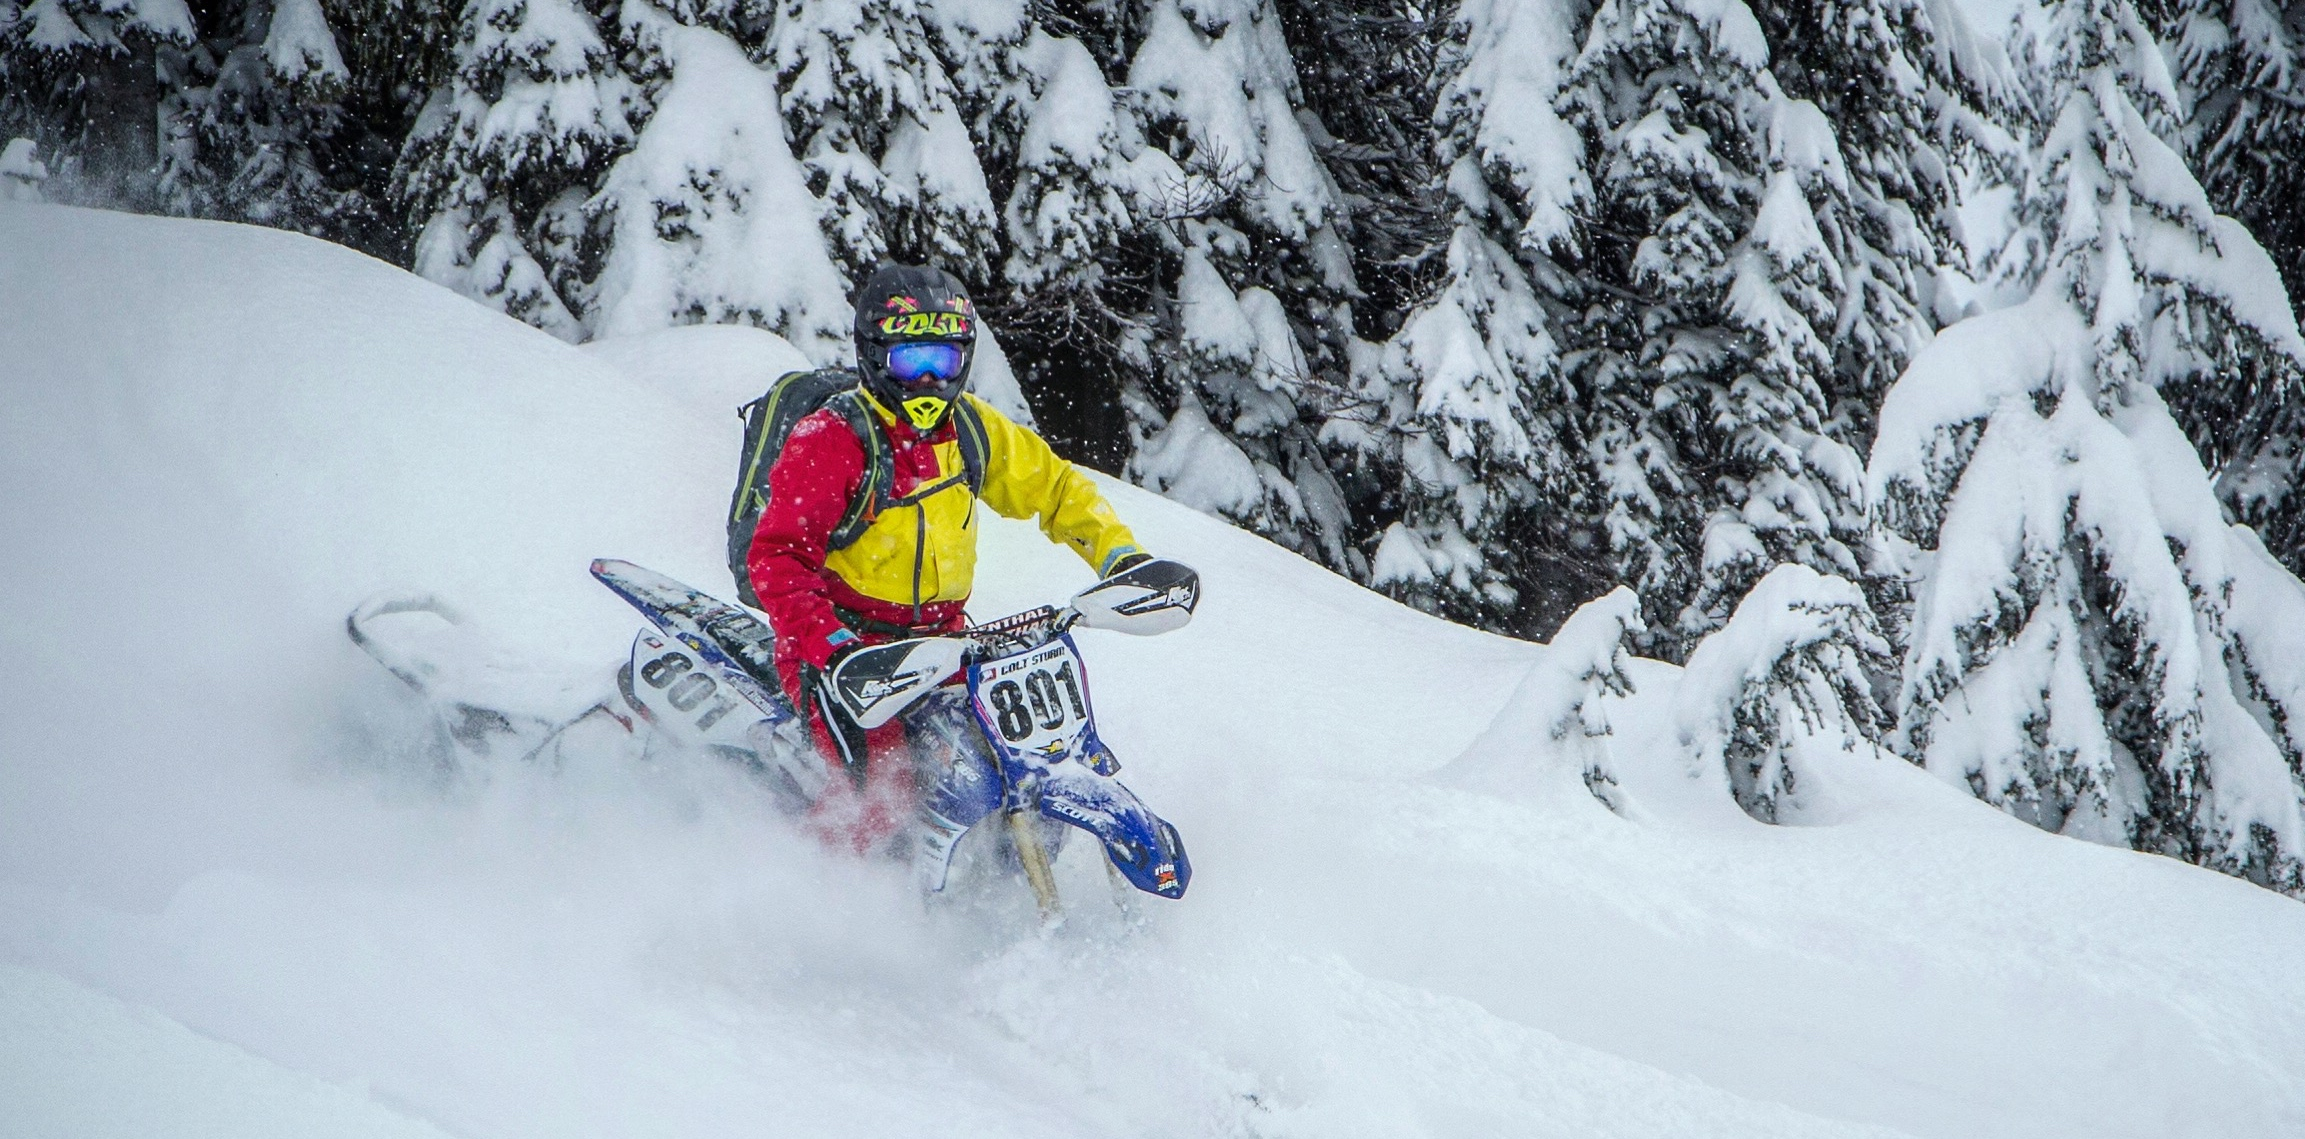 Powersports Feature Ama Championship Snow Bike Series